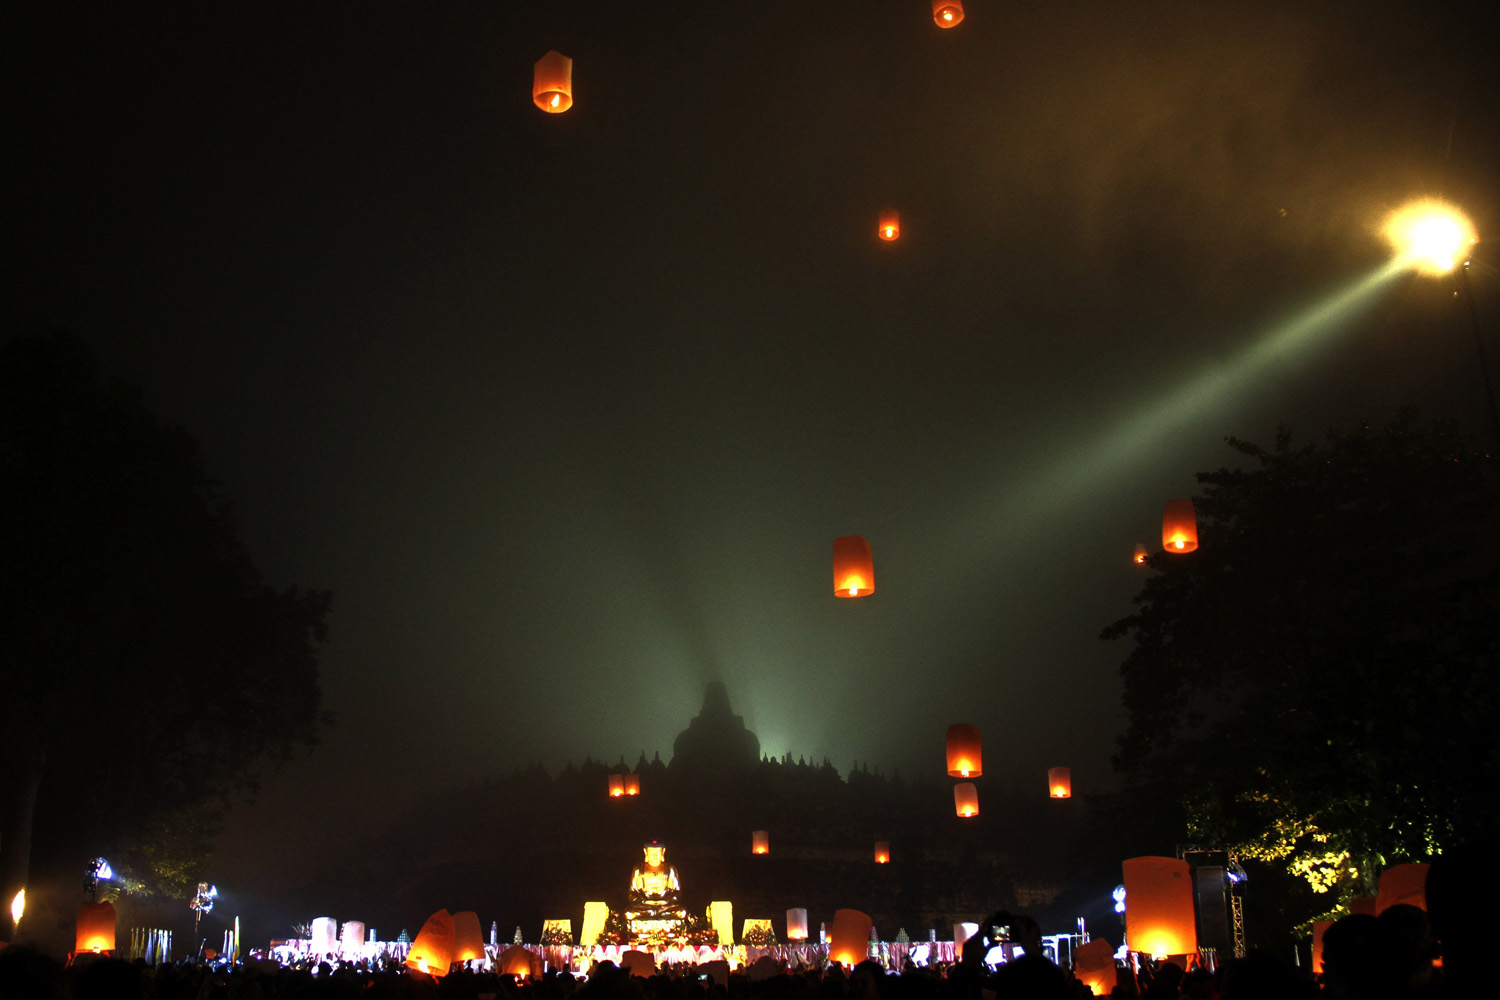 May 15, 2014. Buddhists fly lanterns during a celebration of Vesak day, which marks the birth, enlightenment, and death of Buddha, at Borobudur temple in Magelang, Central Java, Indonesia,